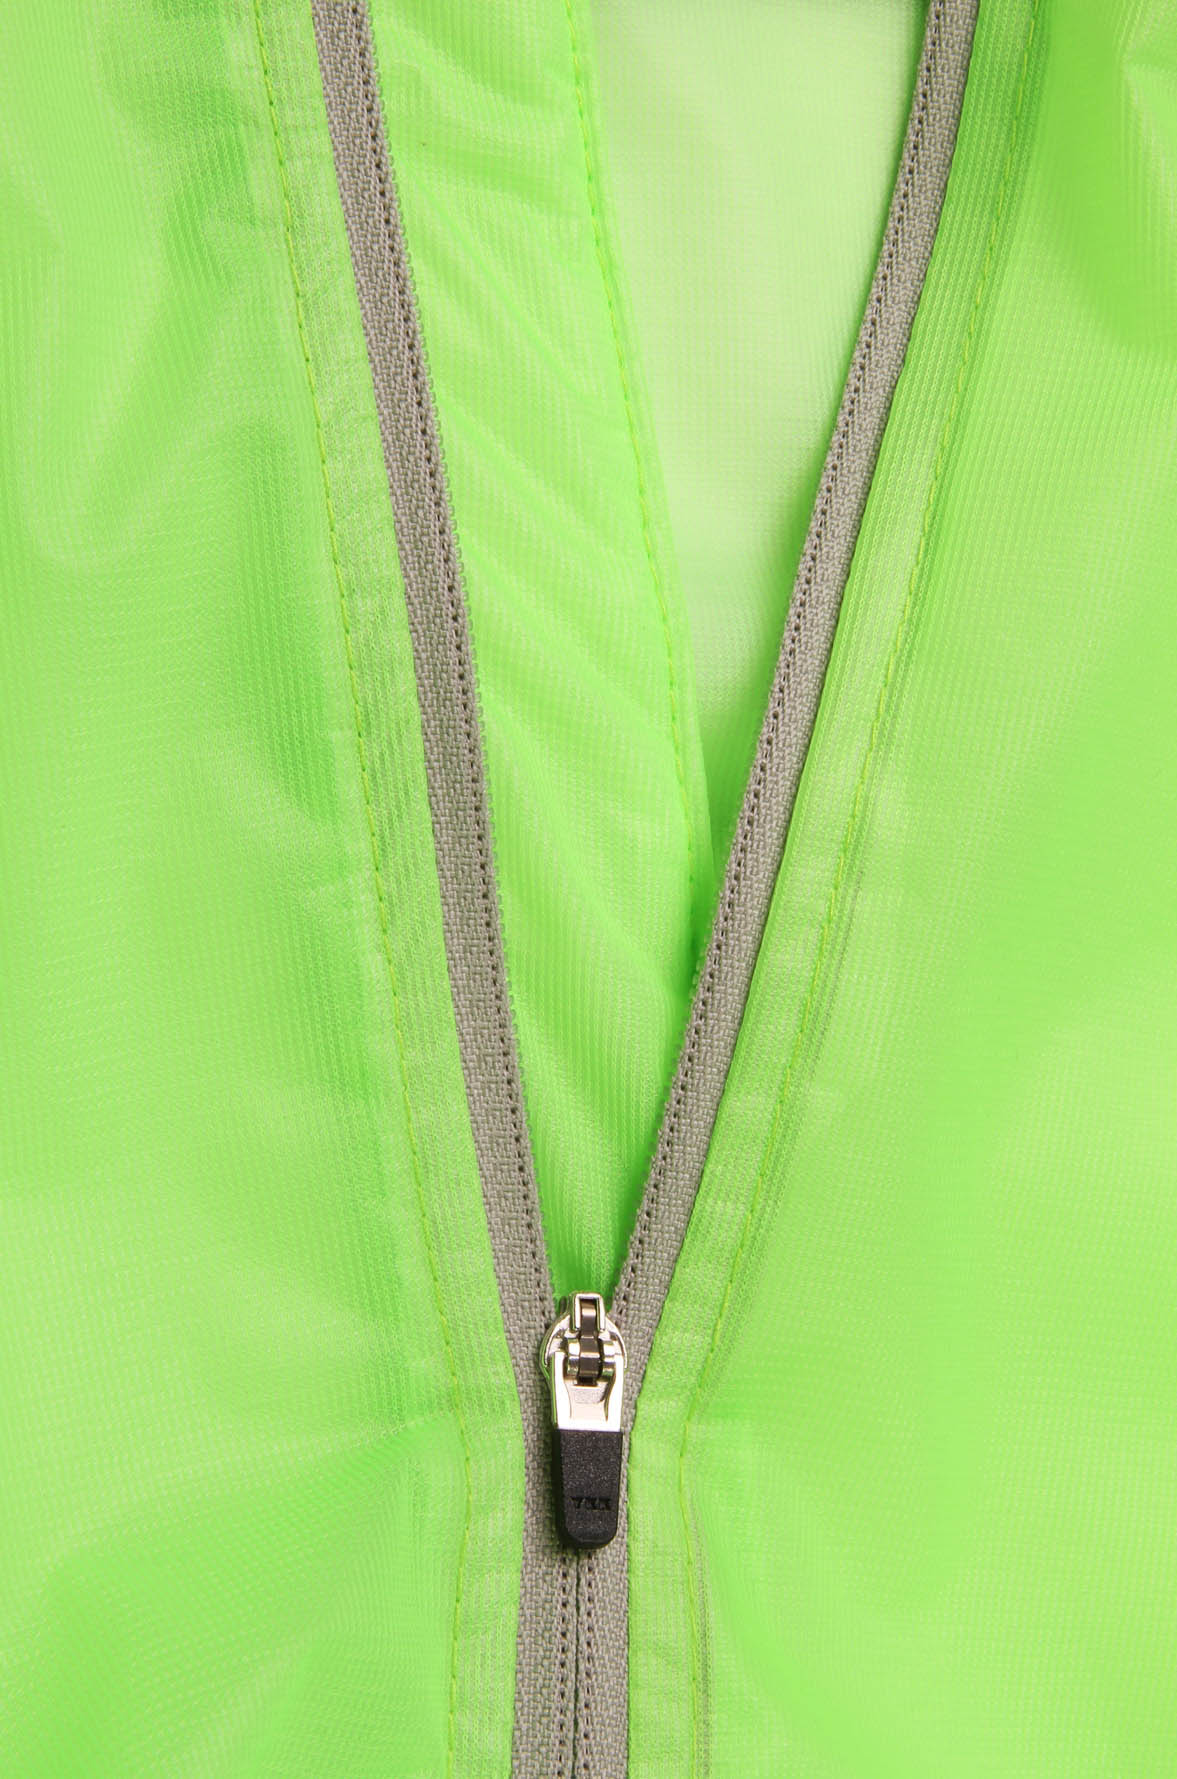 Full length centre zipper with sprung puller